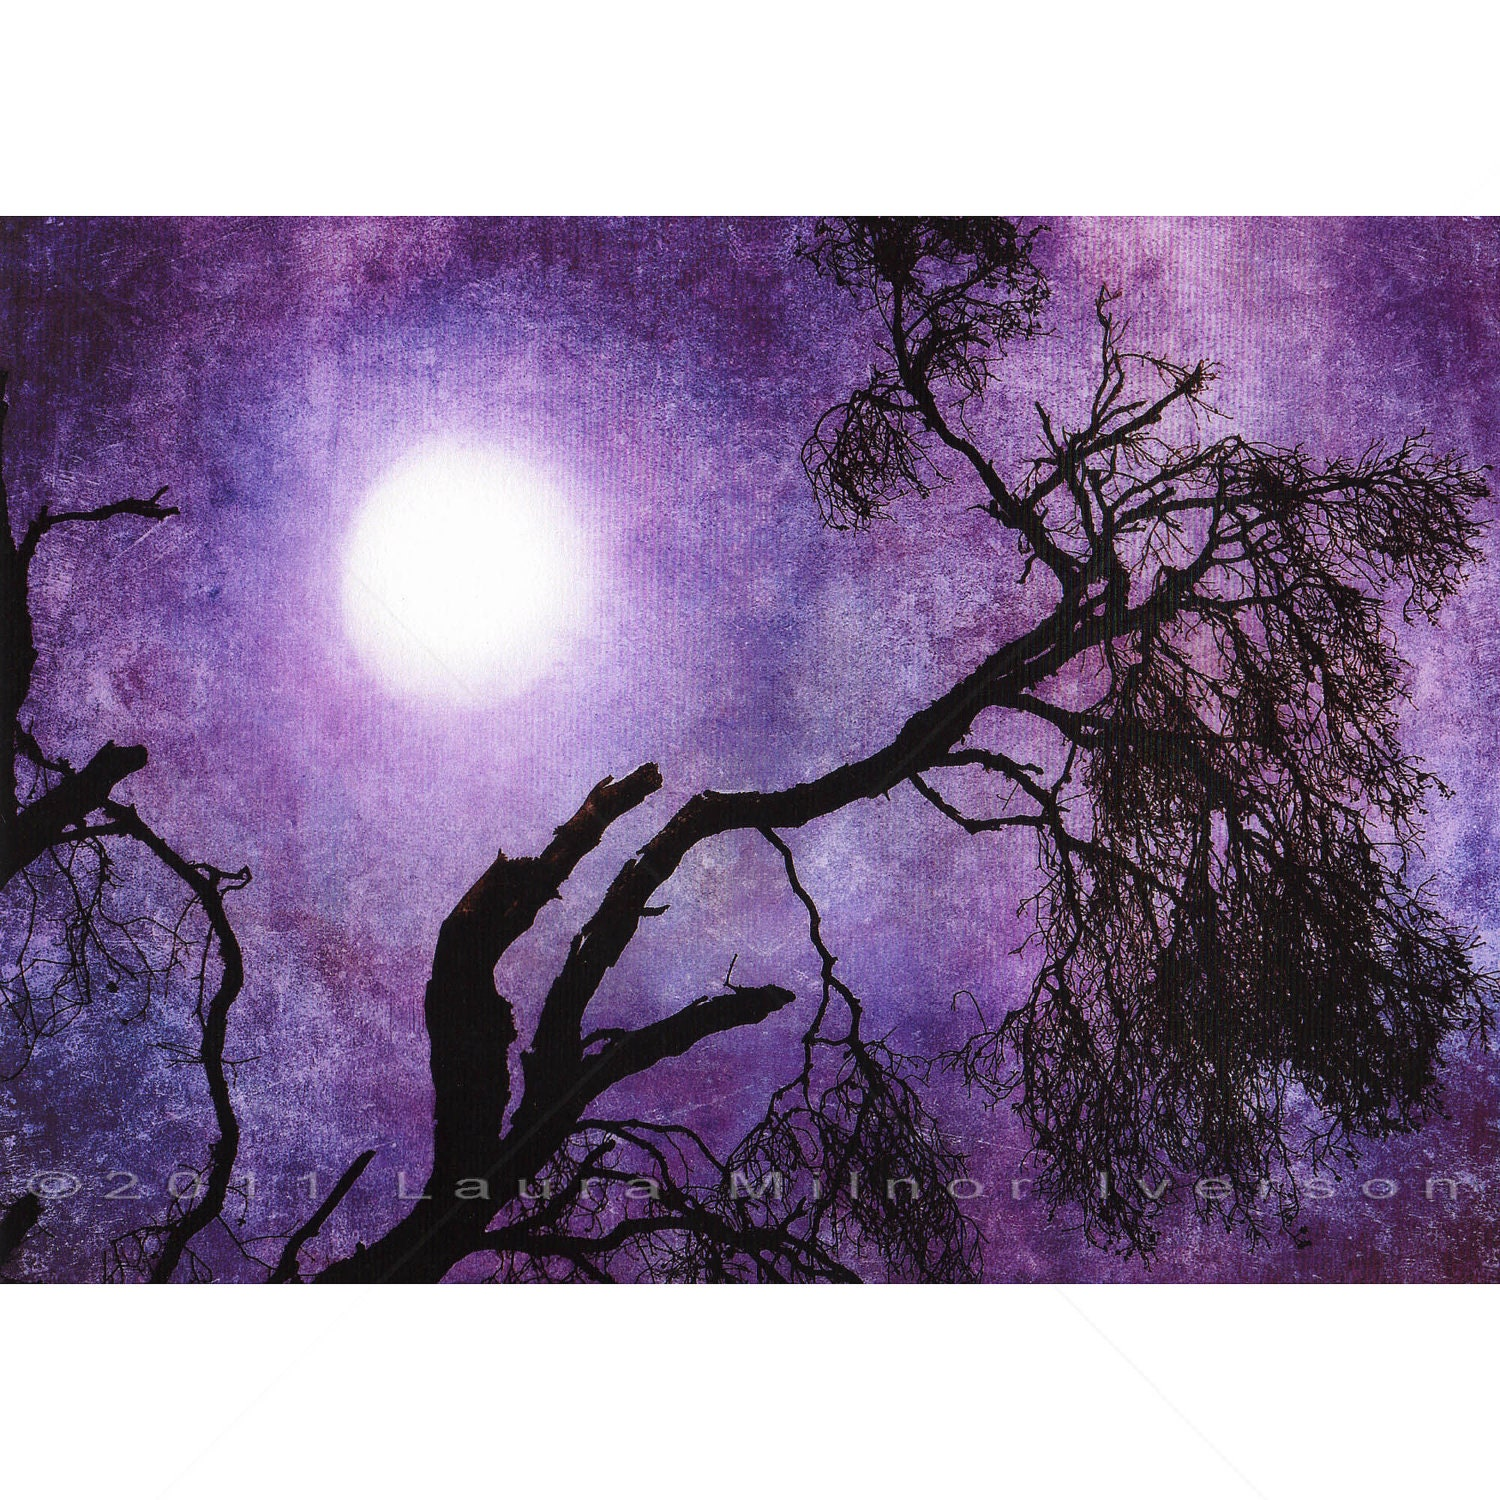 Oak Tree Branch Purple Moon Halloween Grunge Dark Art Print